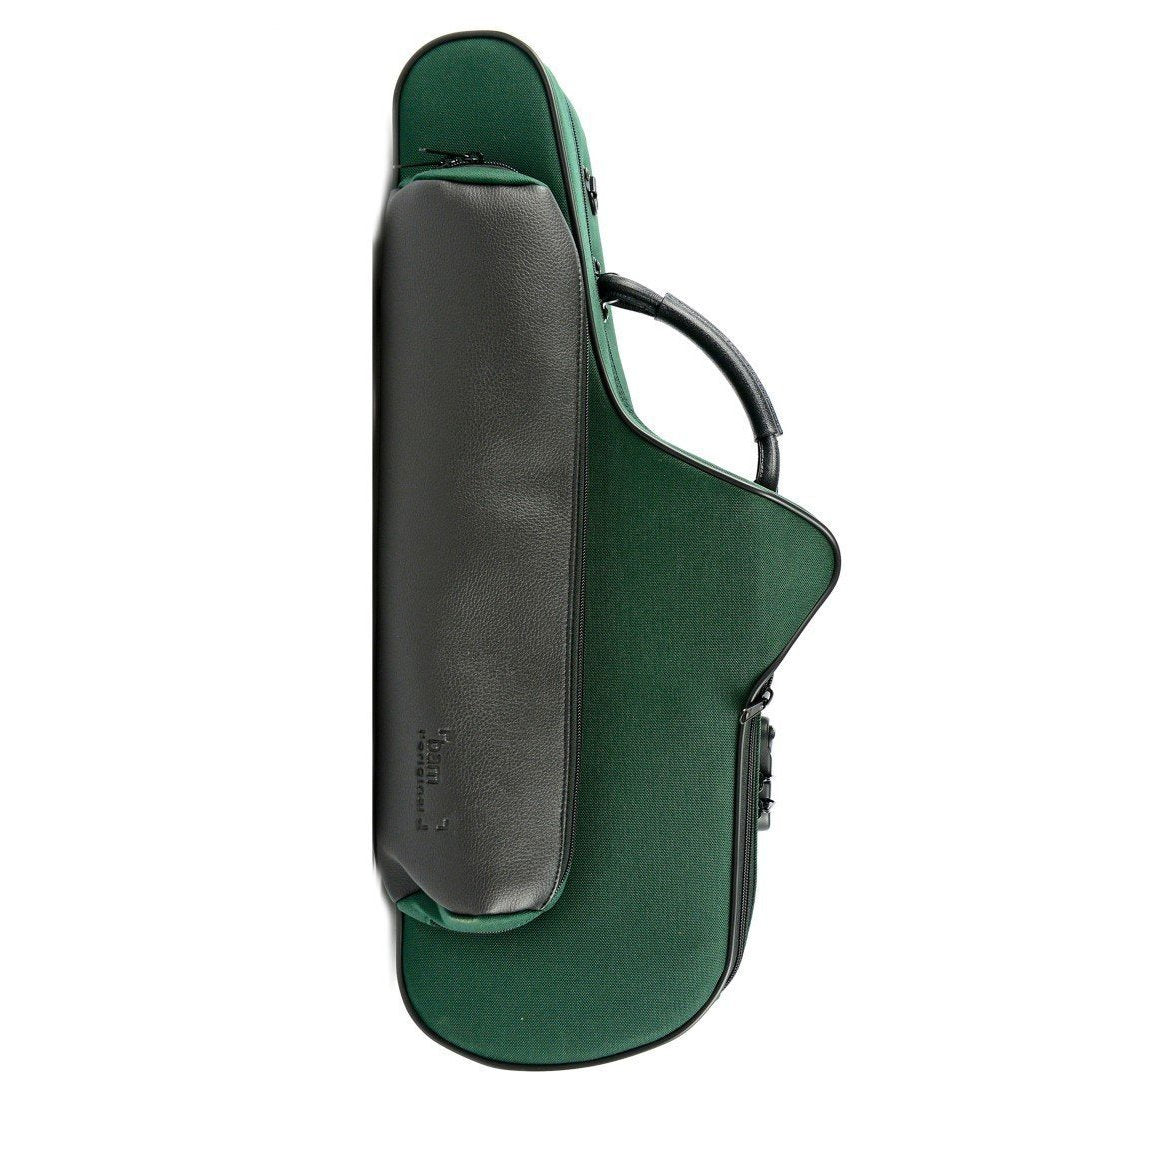 Bam - Classic Alto Saxophone Cases-Case-Bam-Forest Green-Music Elements